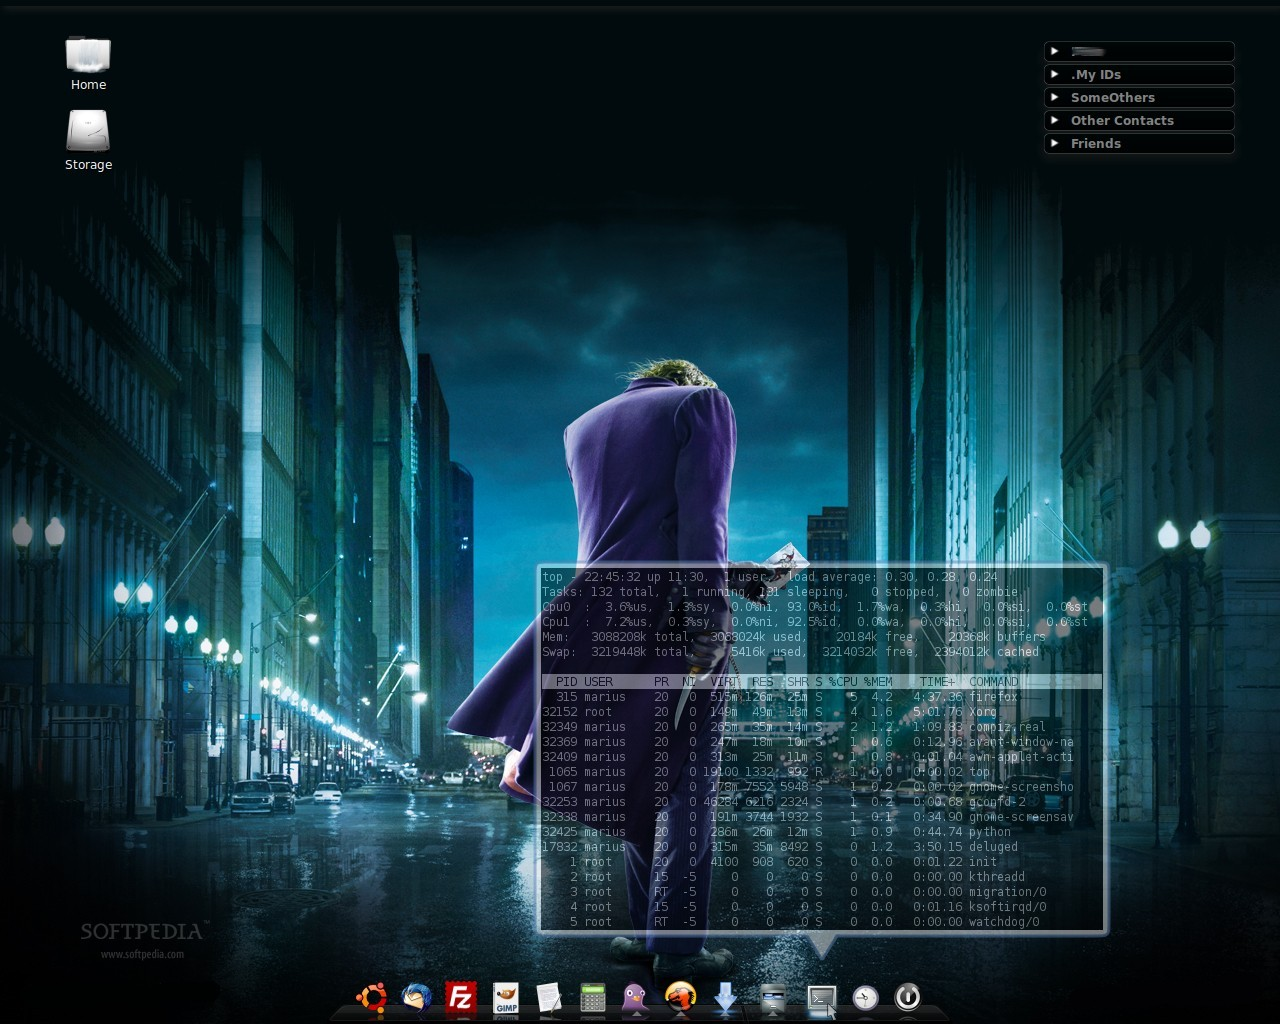 Ubuntu 810 Desktop With AWN Screenlets And Mashup Icons